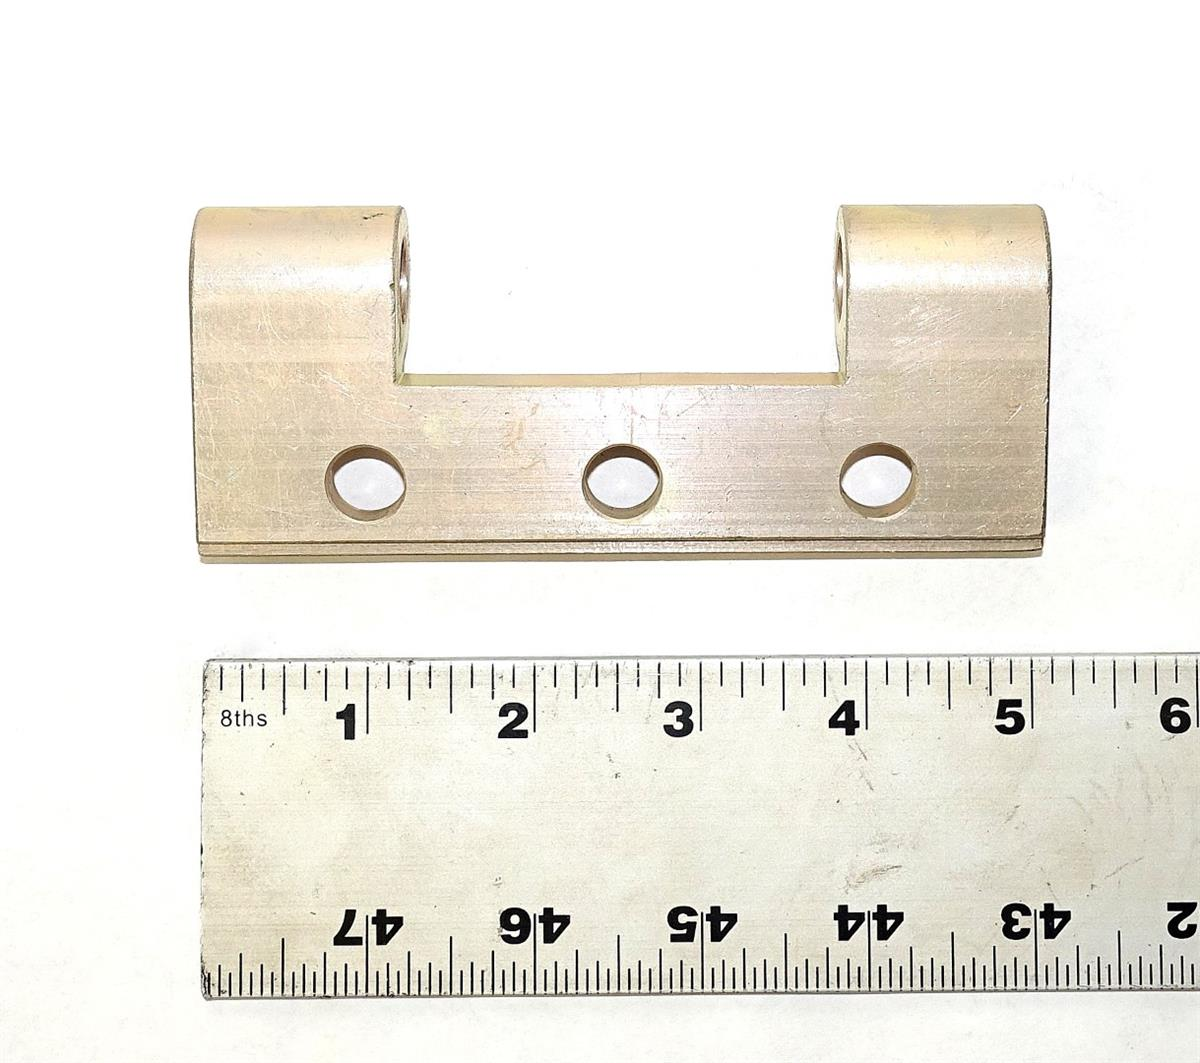 HM-947 | 5340-01-189-7739 Lower Tailgate Hinge (1) (Large).JPG